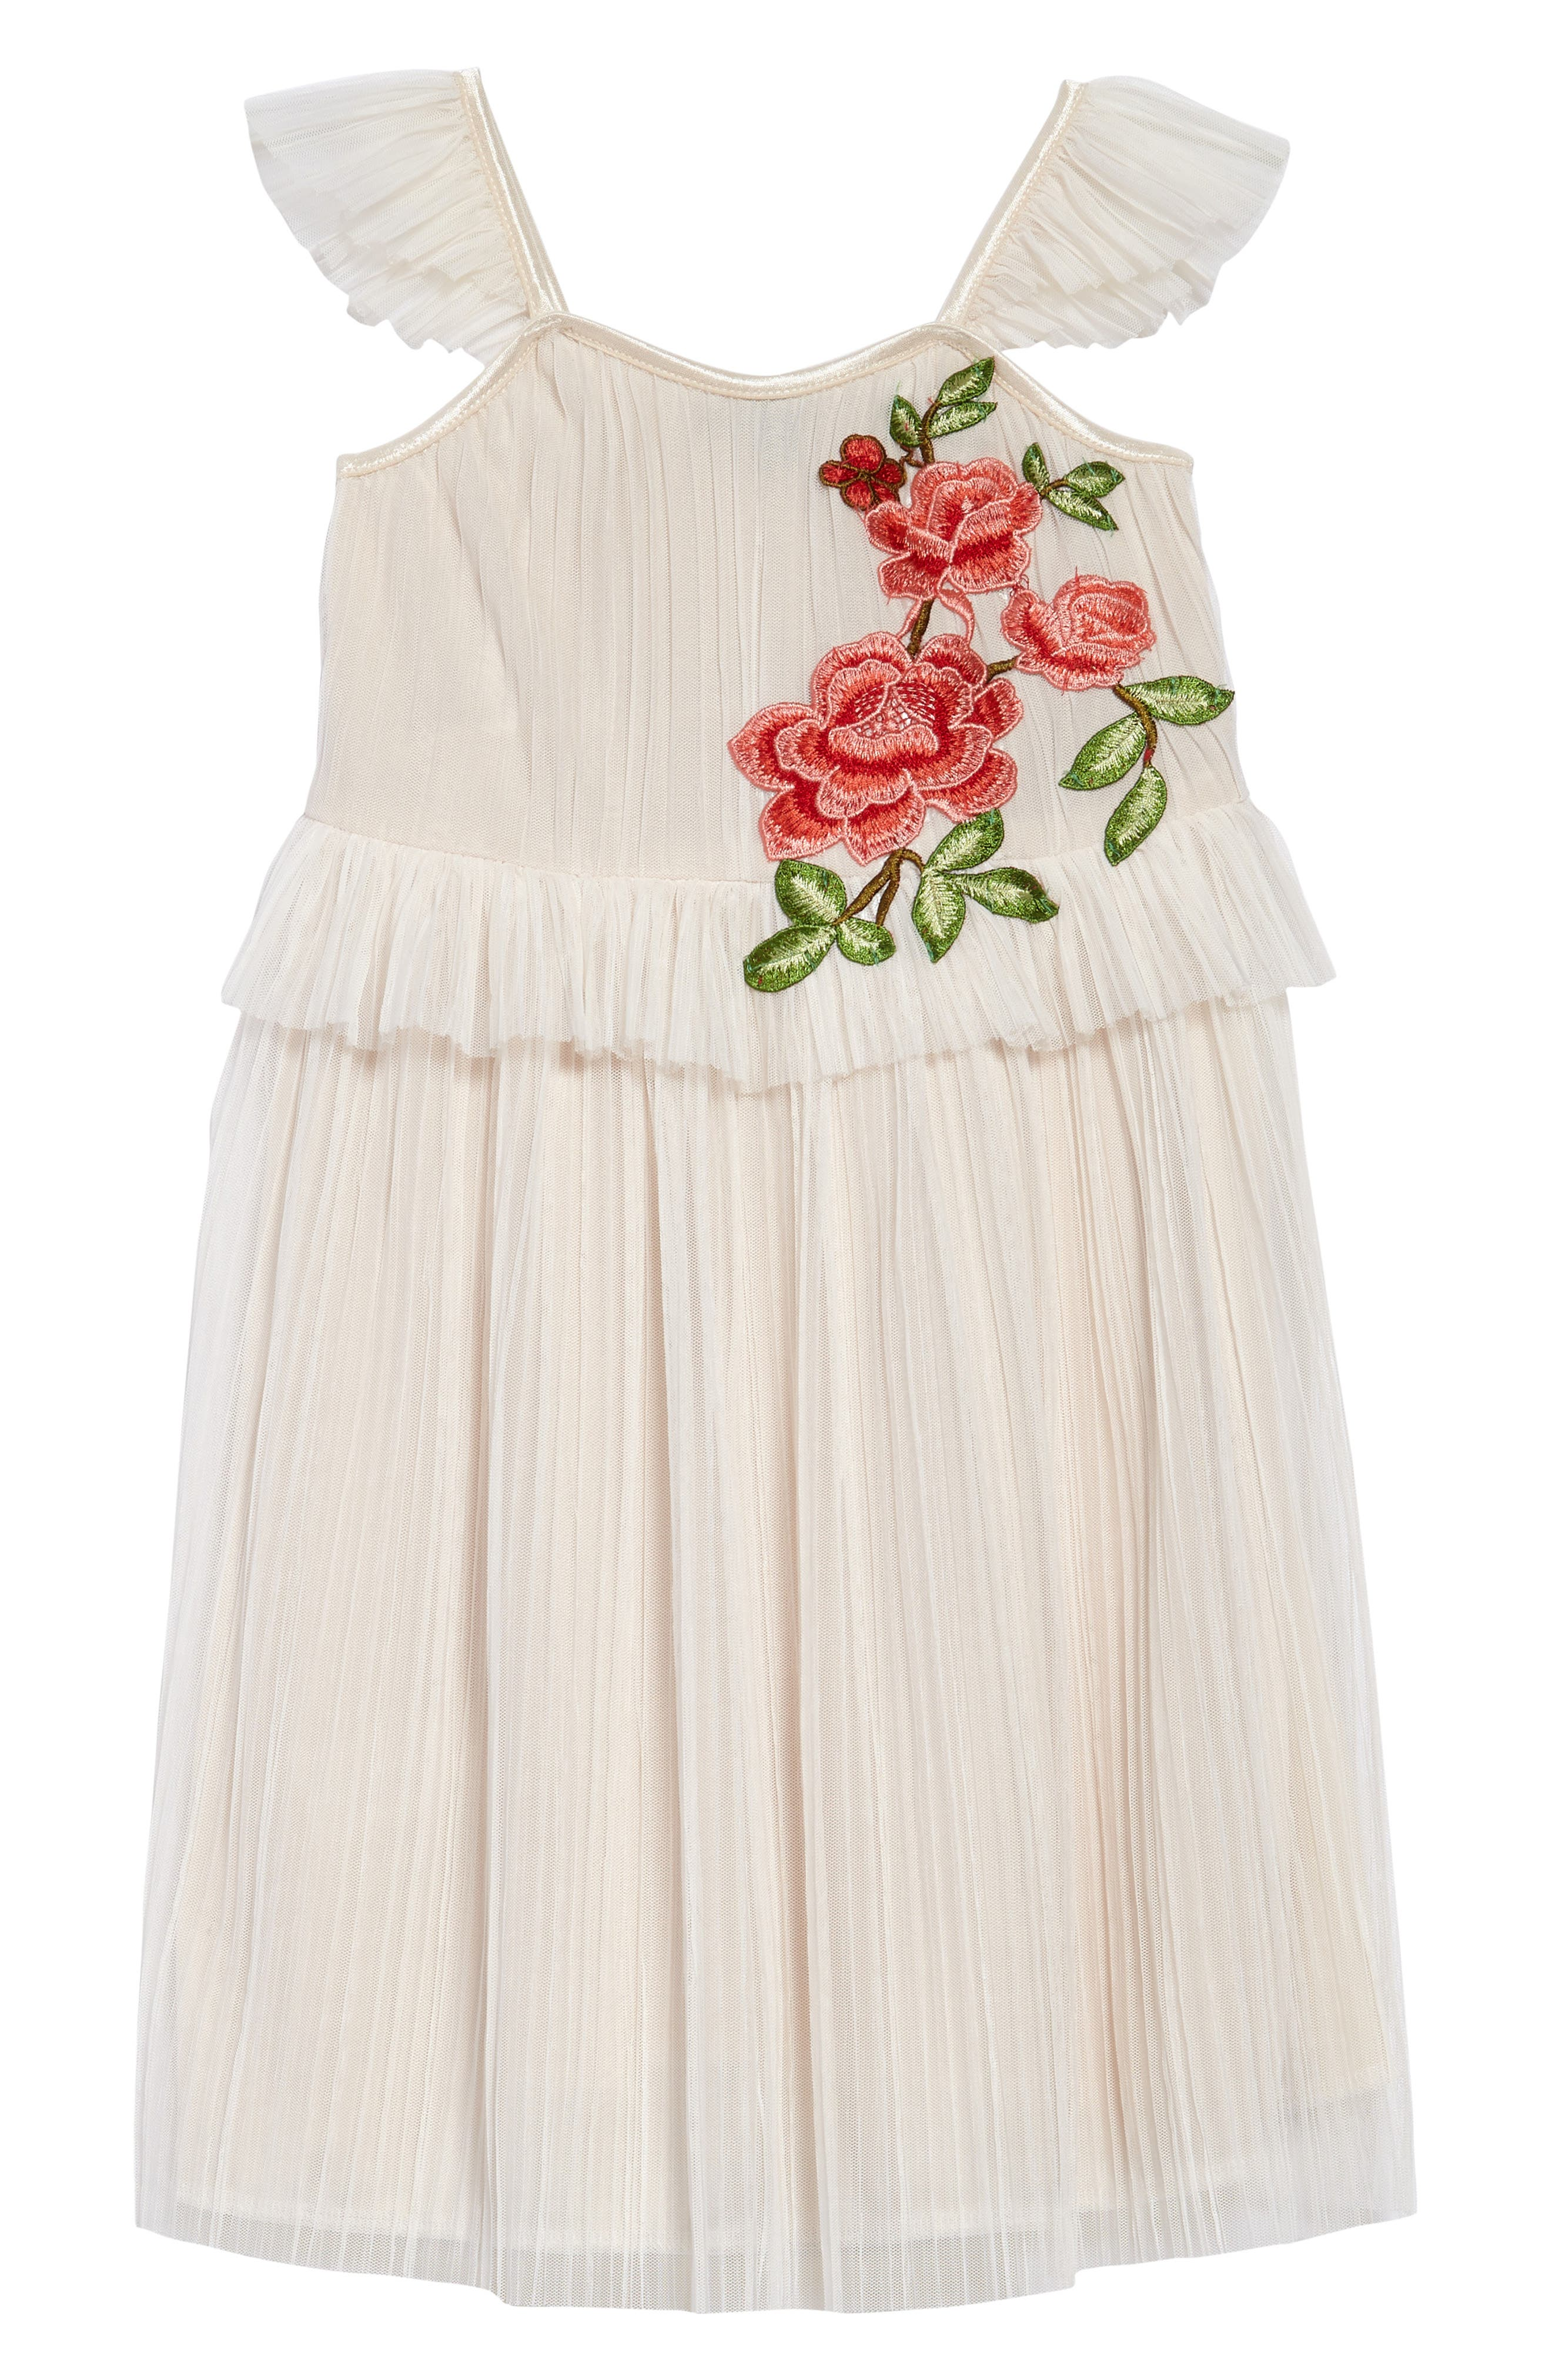 AVA & YELLY Accordion Pleated Dress, Main, color, 250